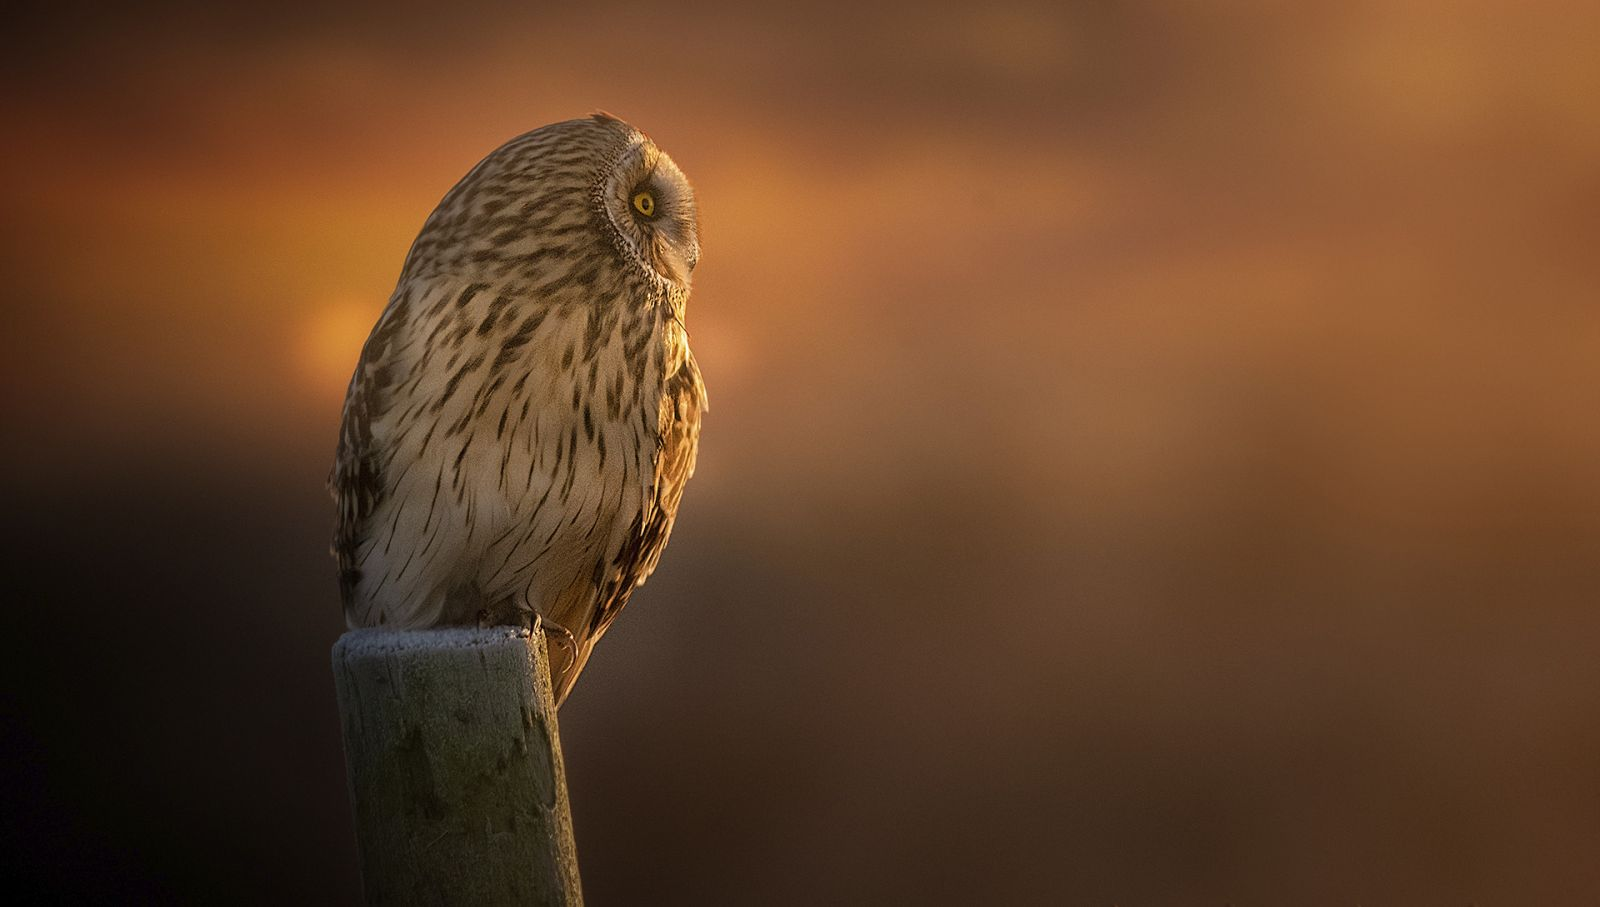 short-eared owl by Yorkshire wildlife photographer John Gardner